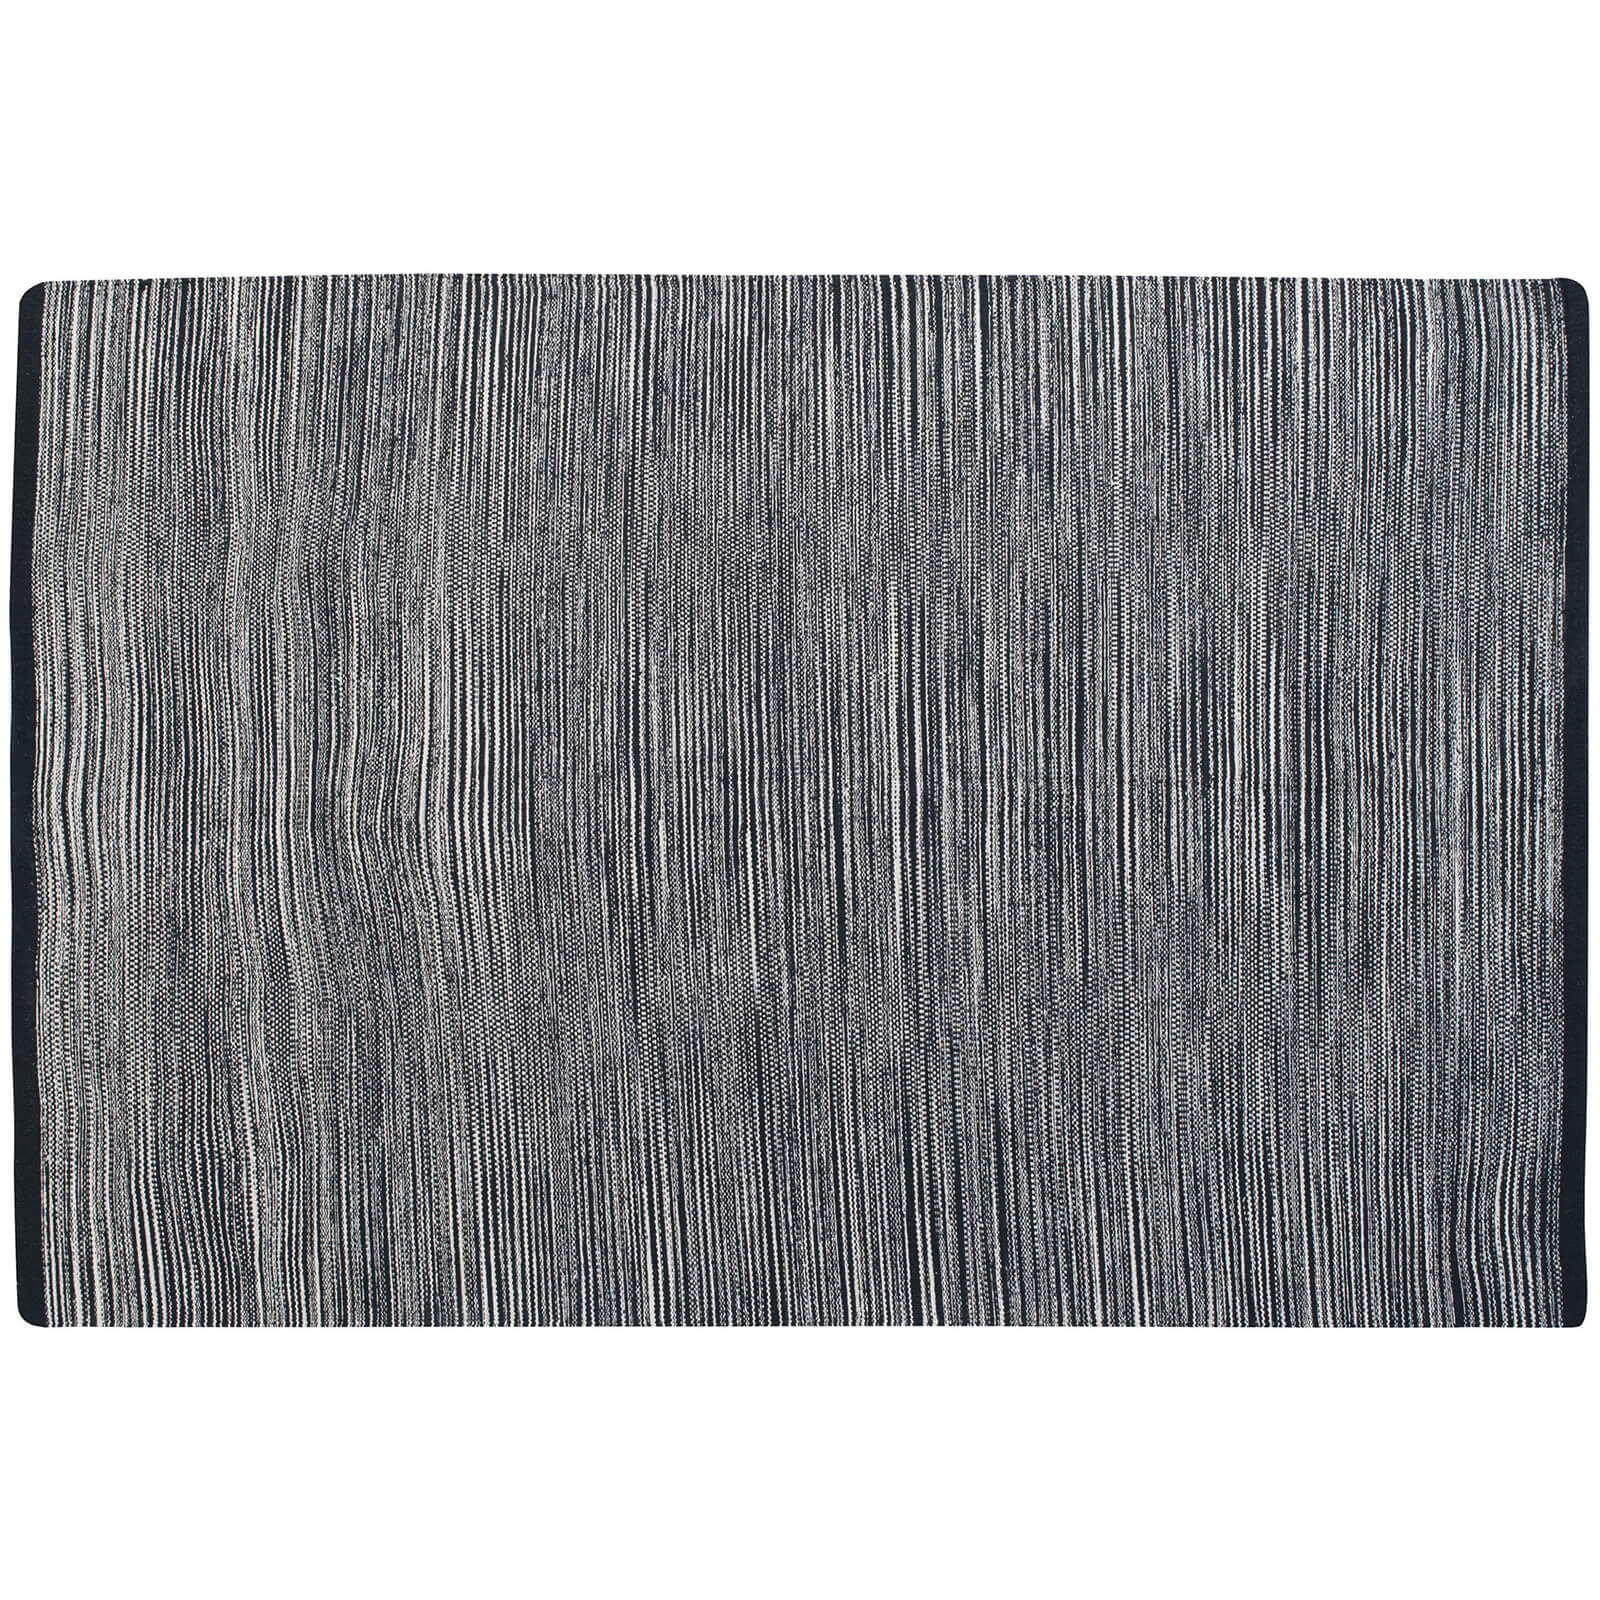 Fifty Five South Bosie Small Stripe 100% Cotton Woven Rug - Black/Multi Stripe